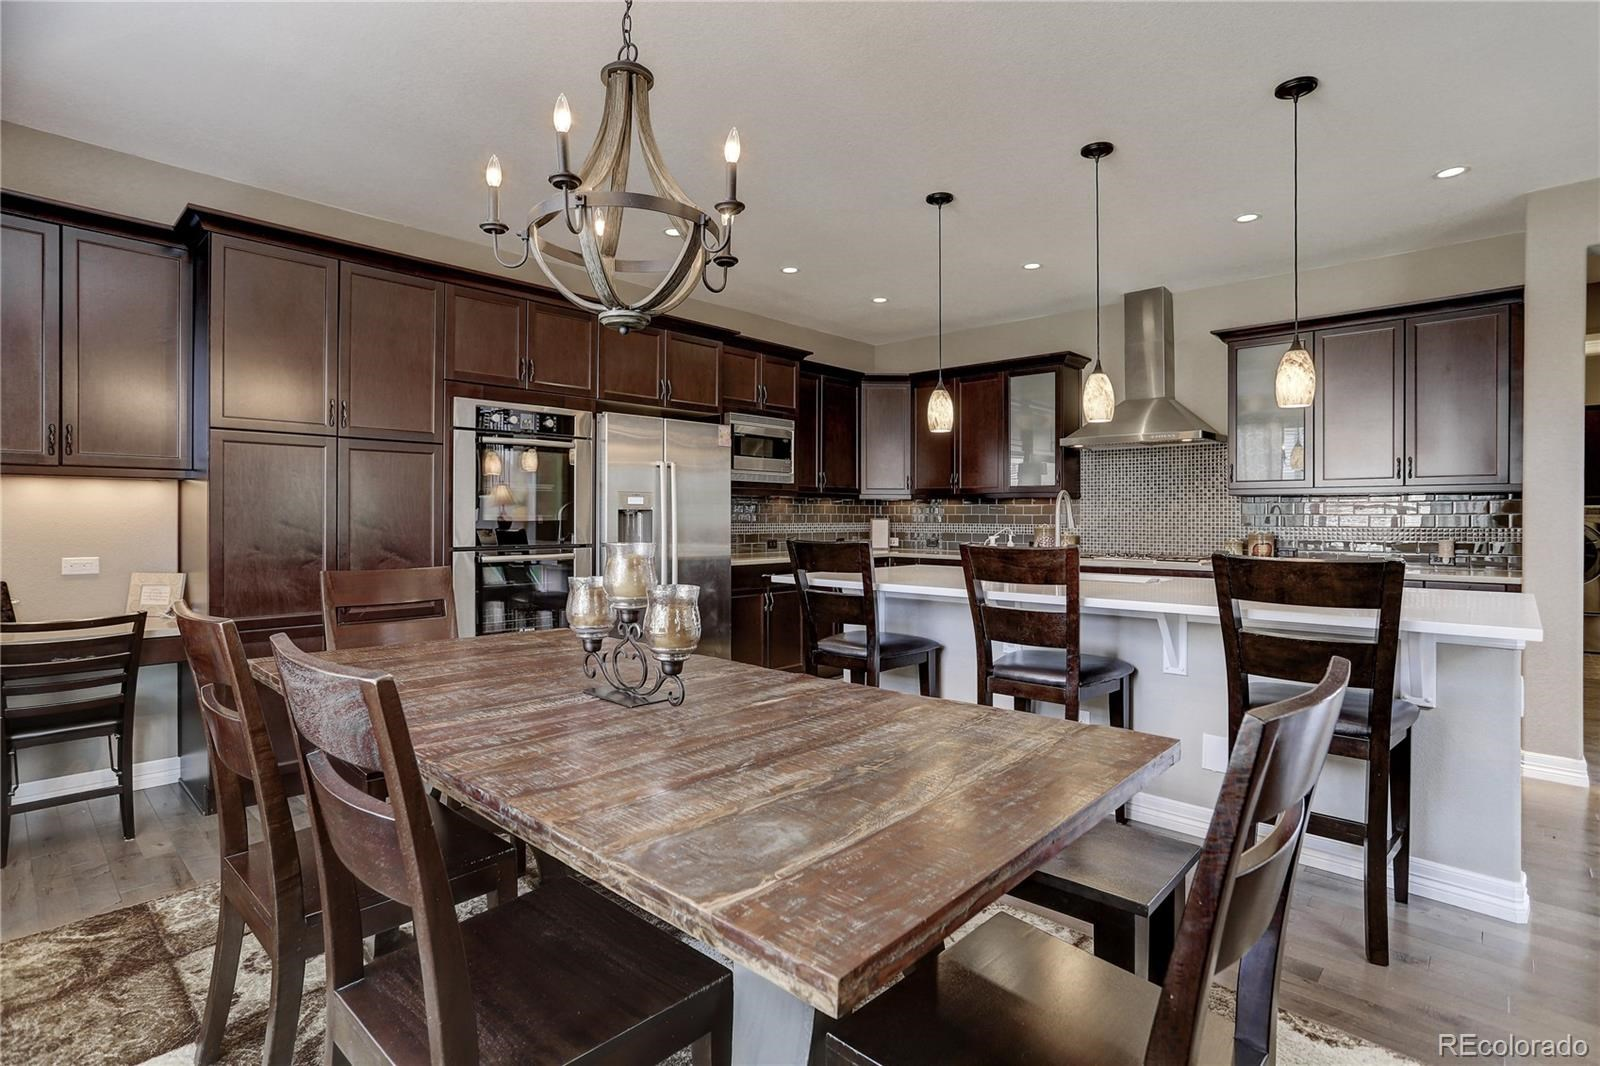 MLS# 8360577 - 12 - 2247 S Isabell Court, Lakewood, CO 80228